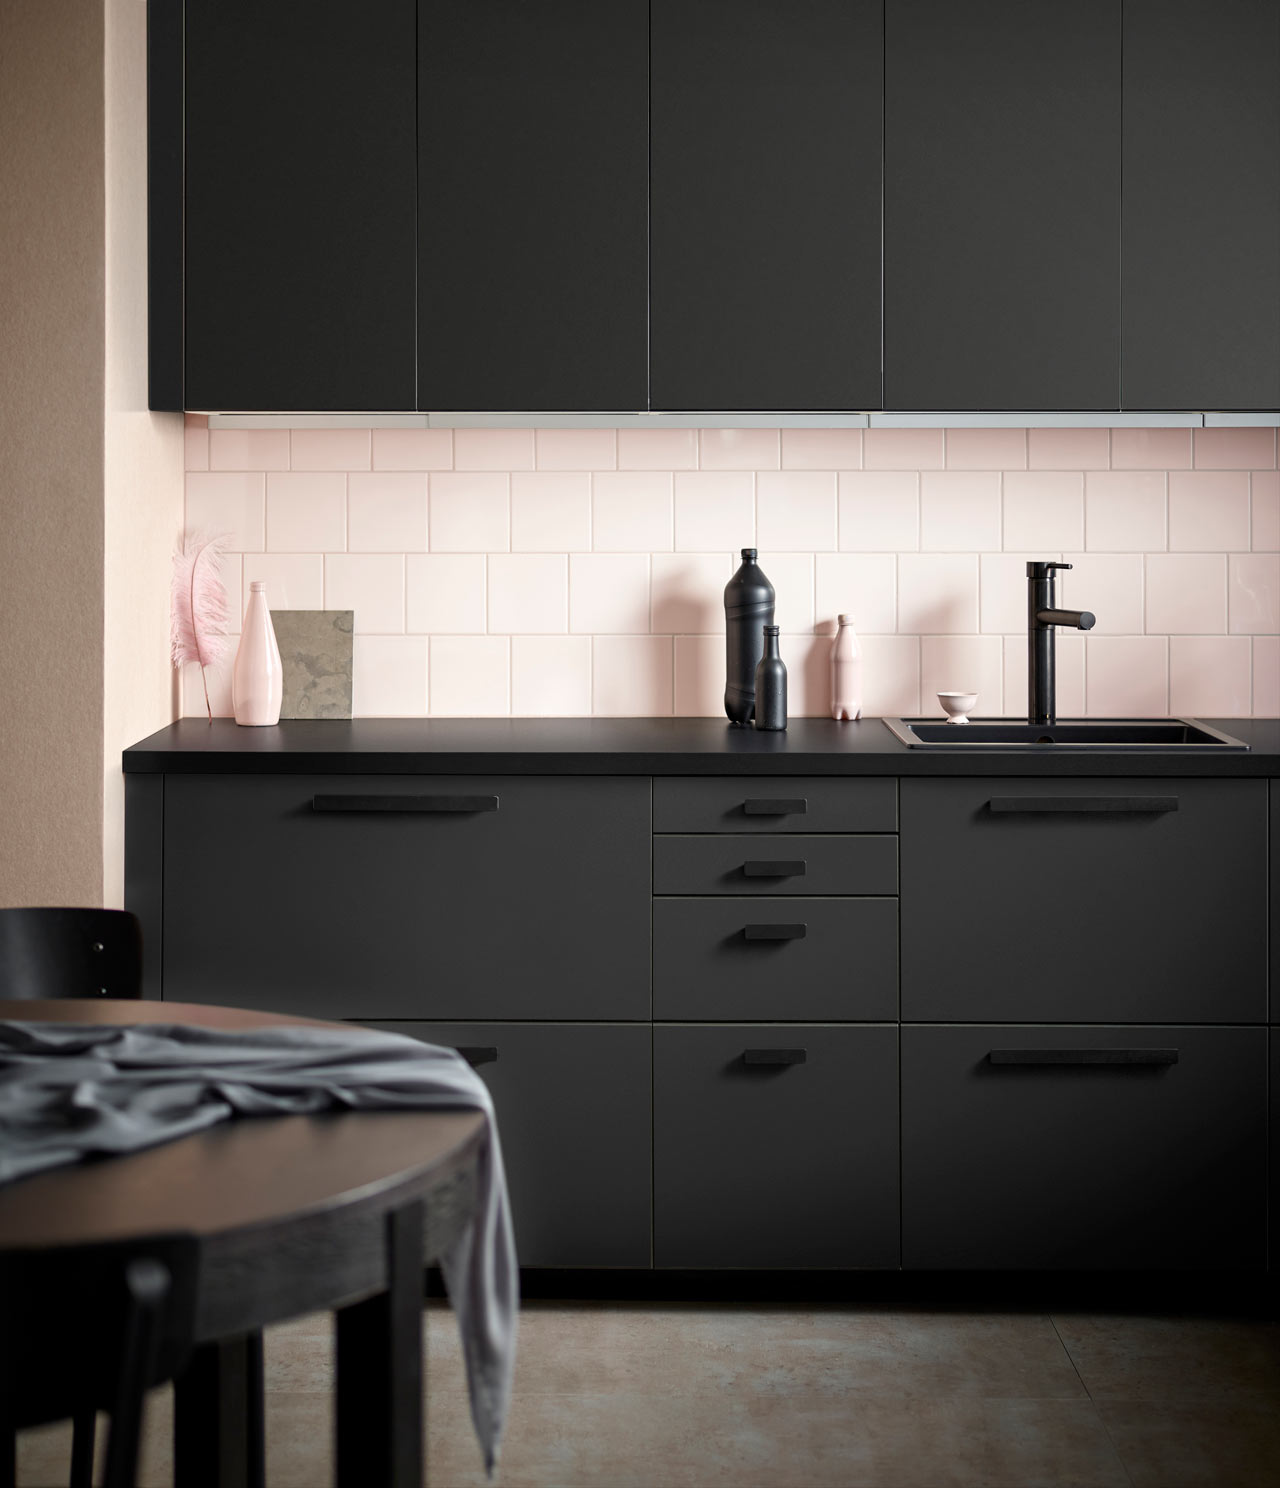 Home Furnishings Interior Design Main IKEA Kitchen Fronts Made Of Recycled Plastic Reclaimed